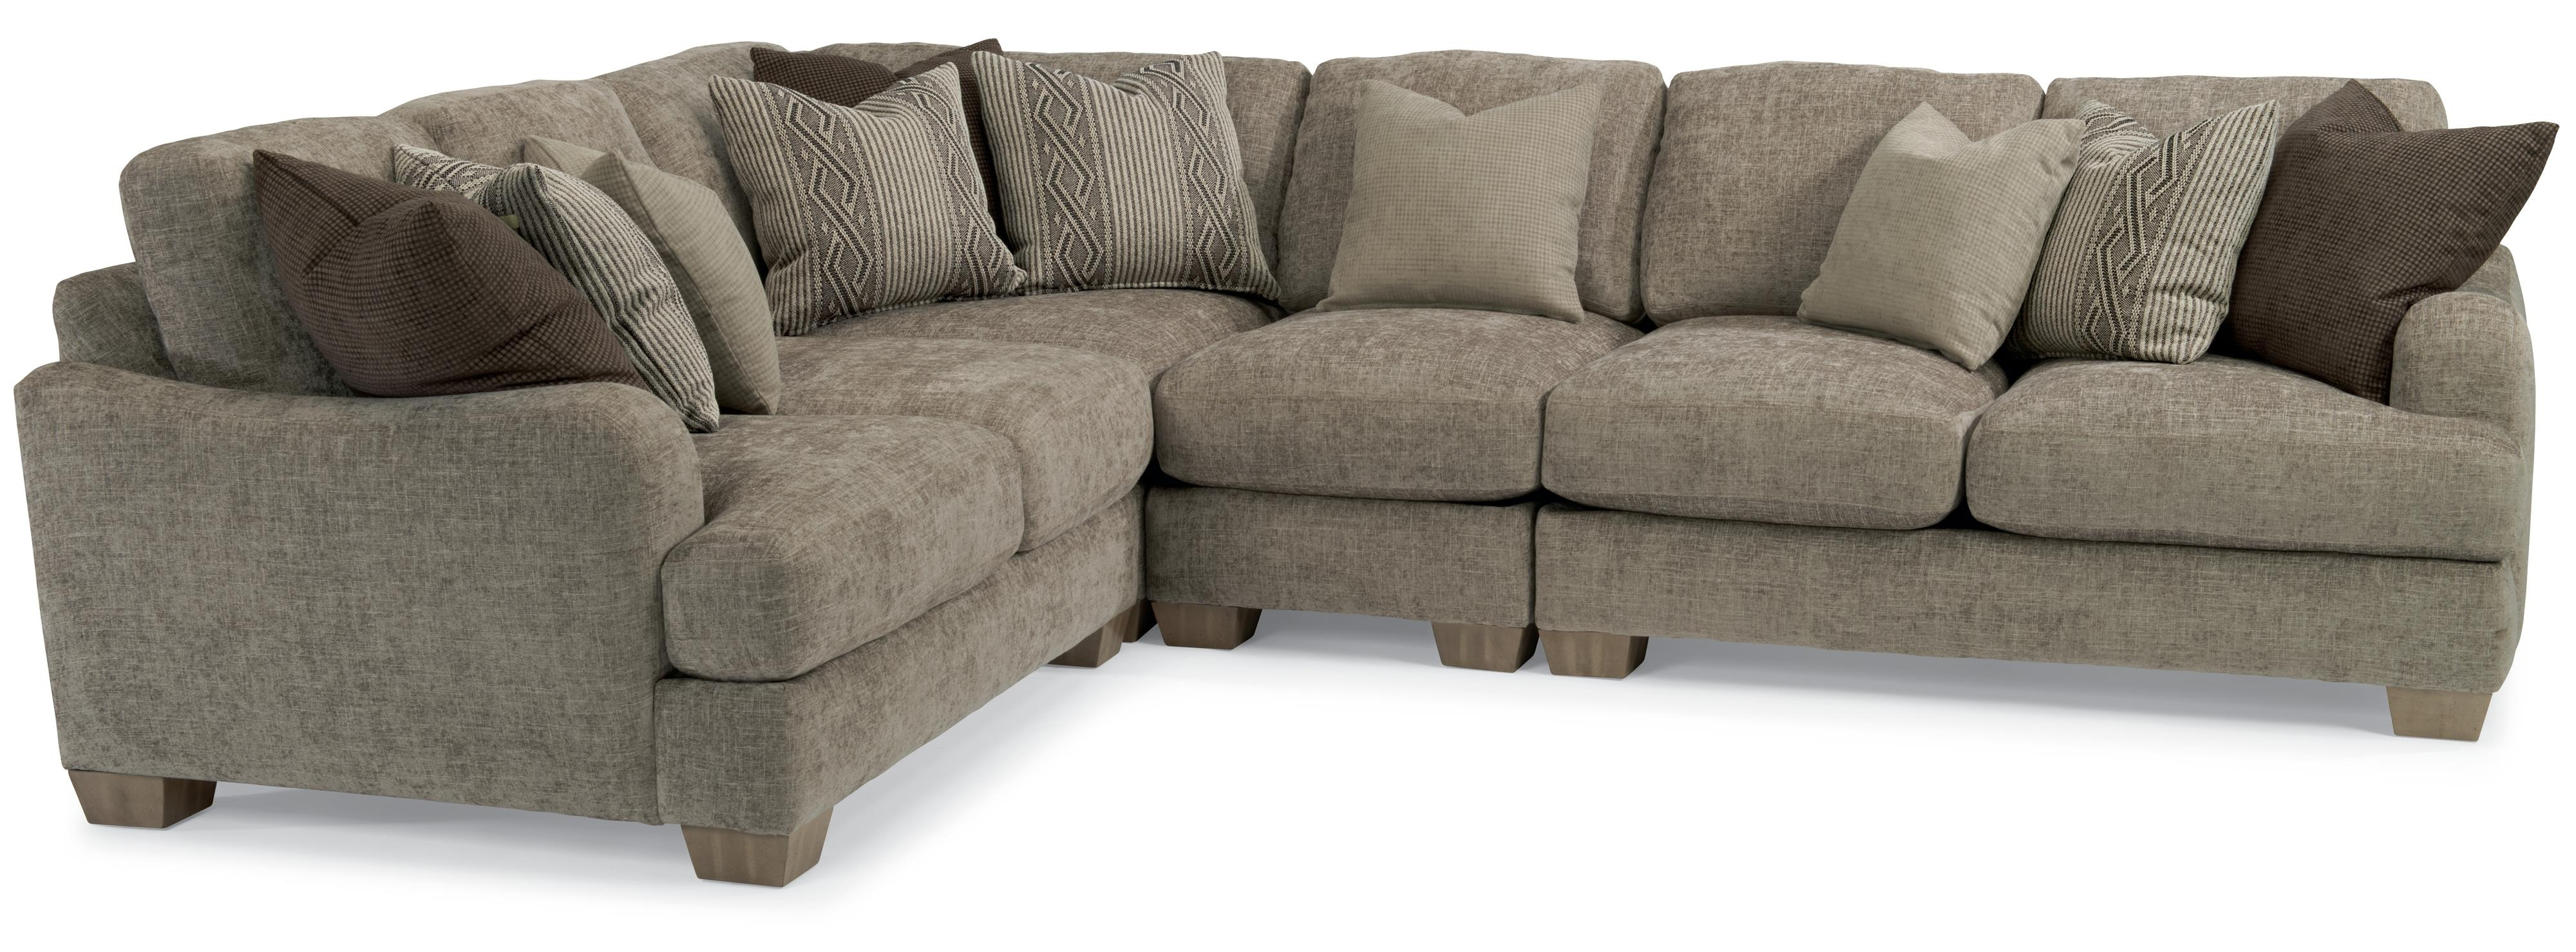 leather sofa nova scotia jennifer convertible queen size bed 10 top sectional sofas ideas